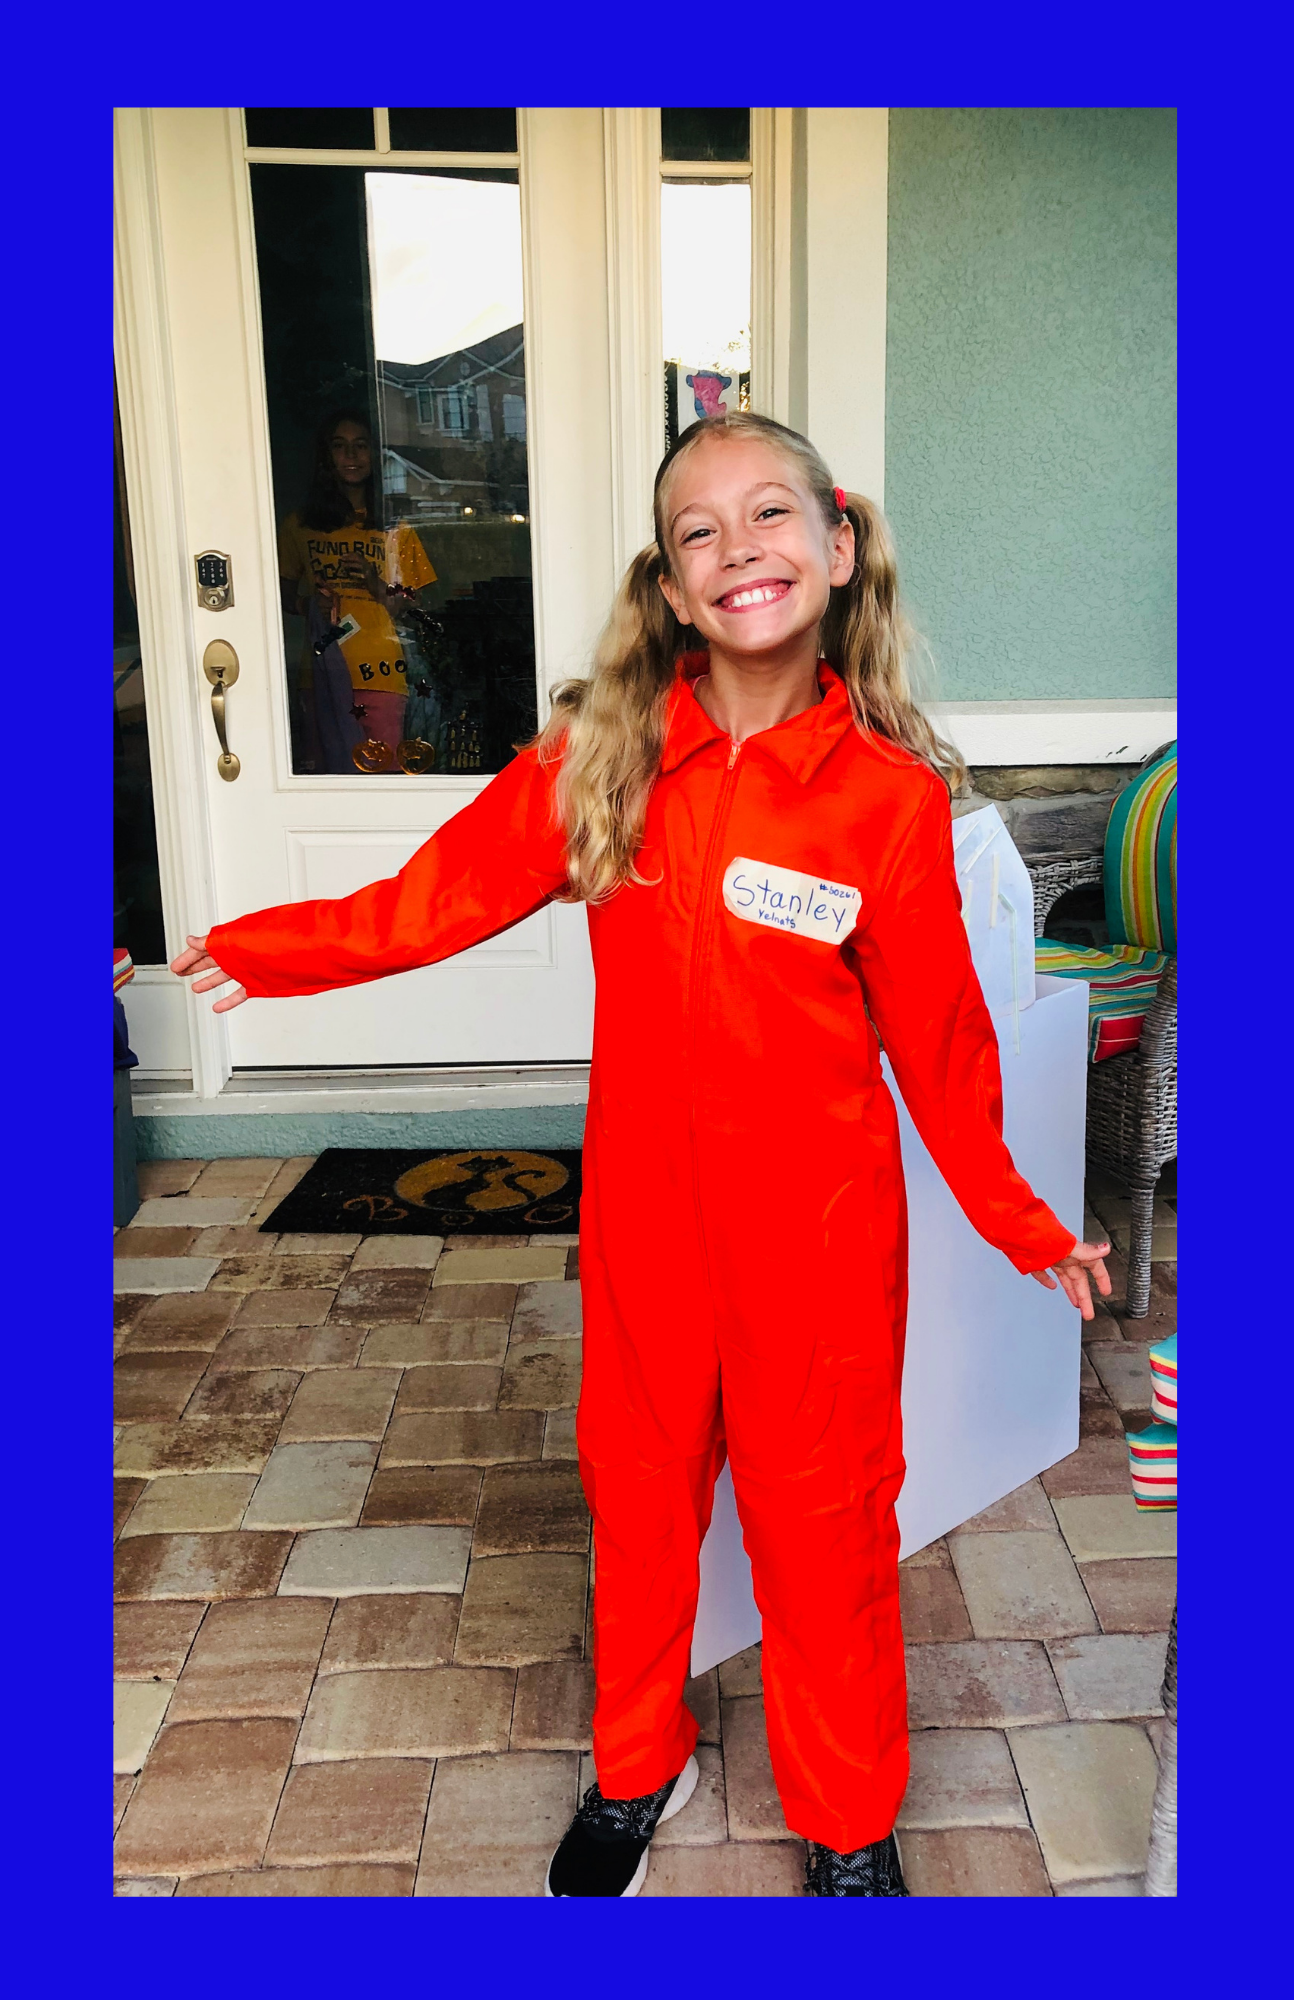 A blonde girl dressed as Stanley Yelnats for the book Holes. Children's Books Gift Guide 2020.